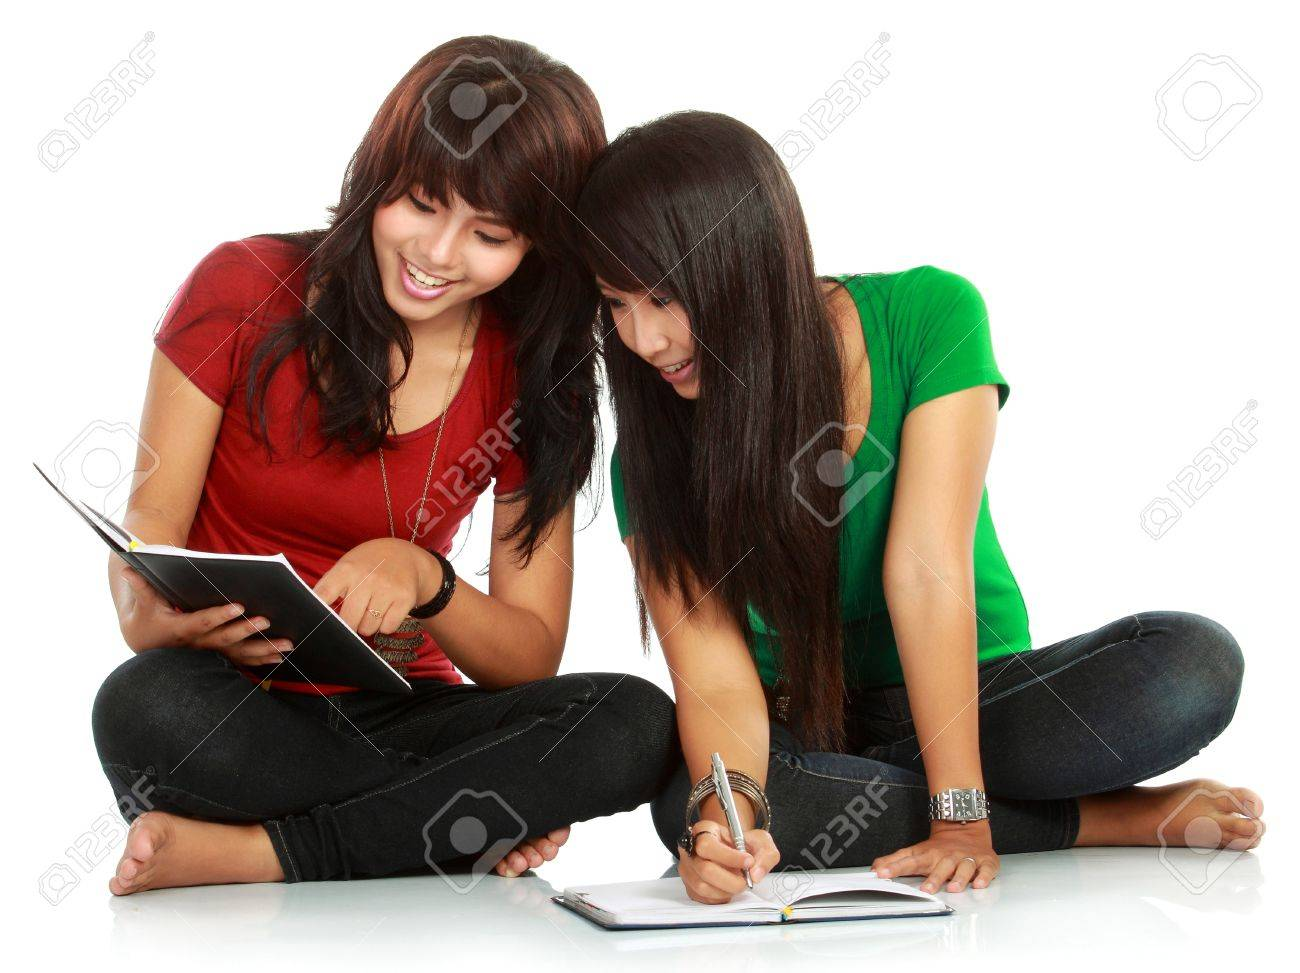 Portrait of a young students smiling while reading a book over white background Stock Photo - 11844988